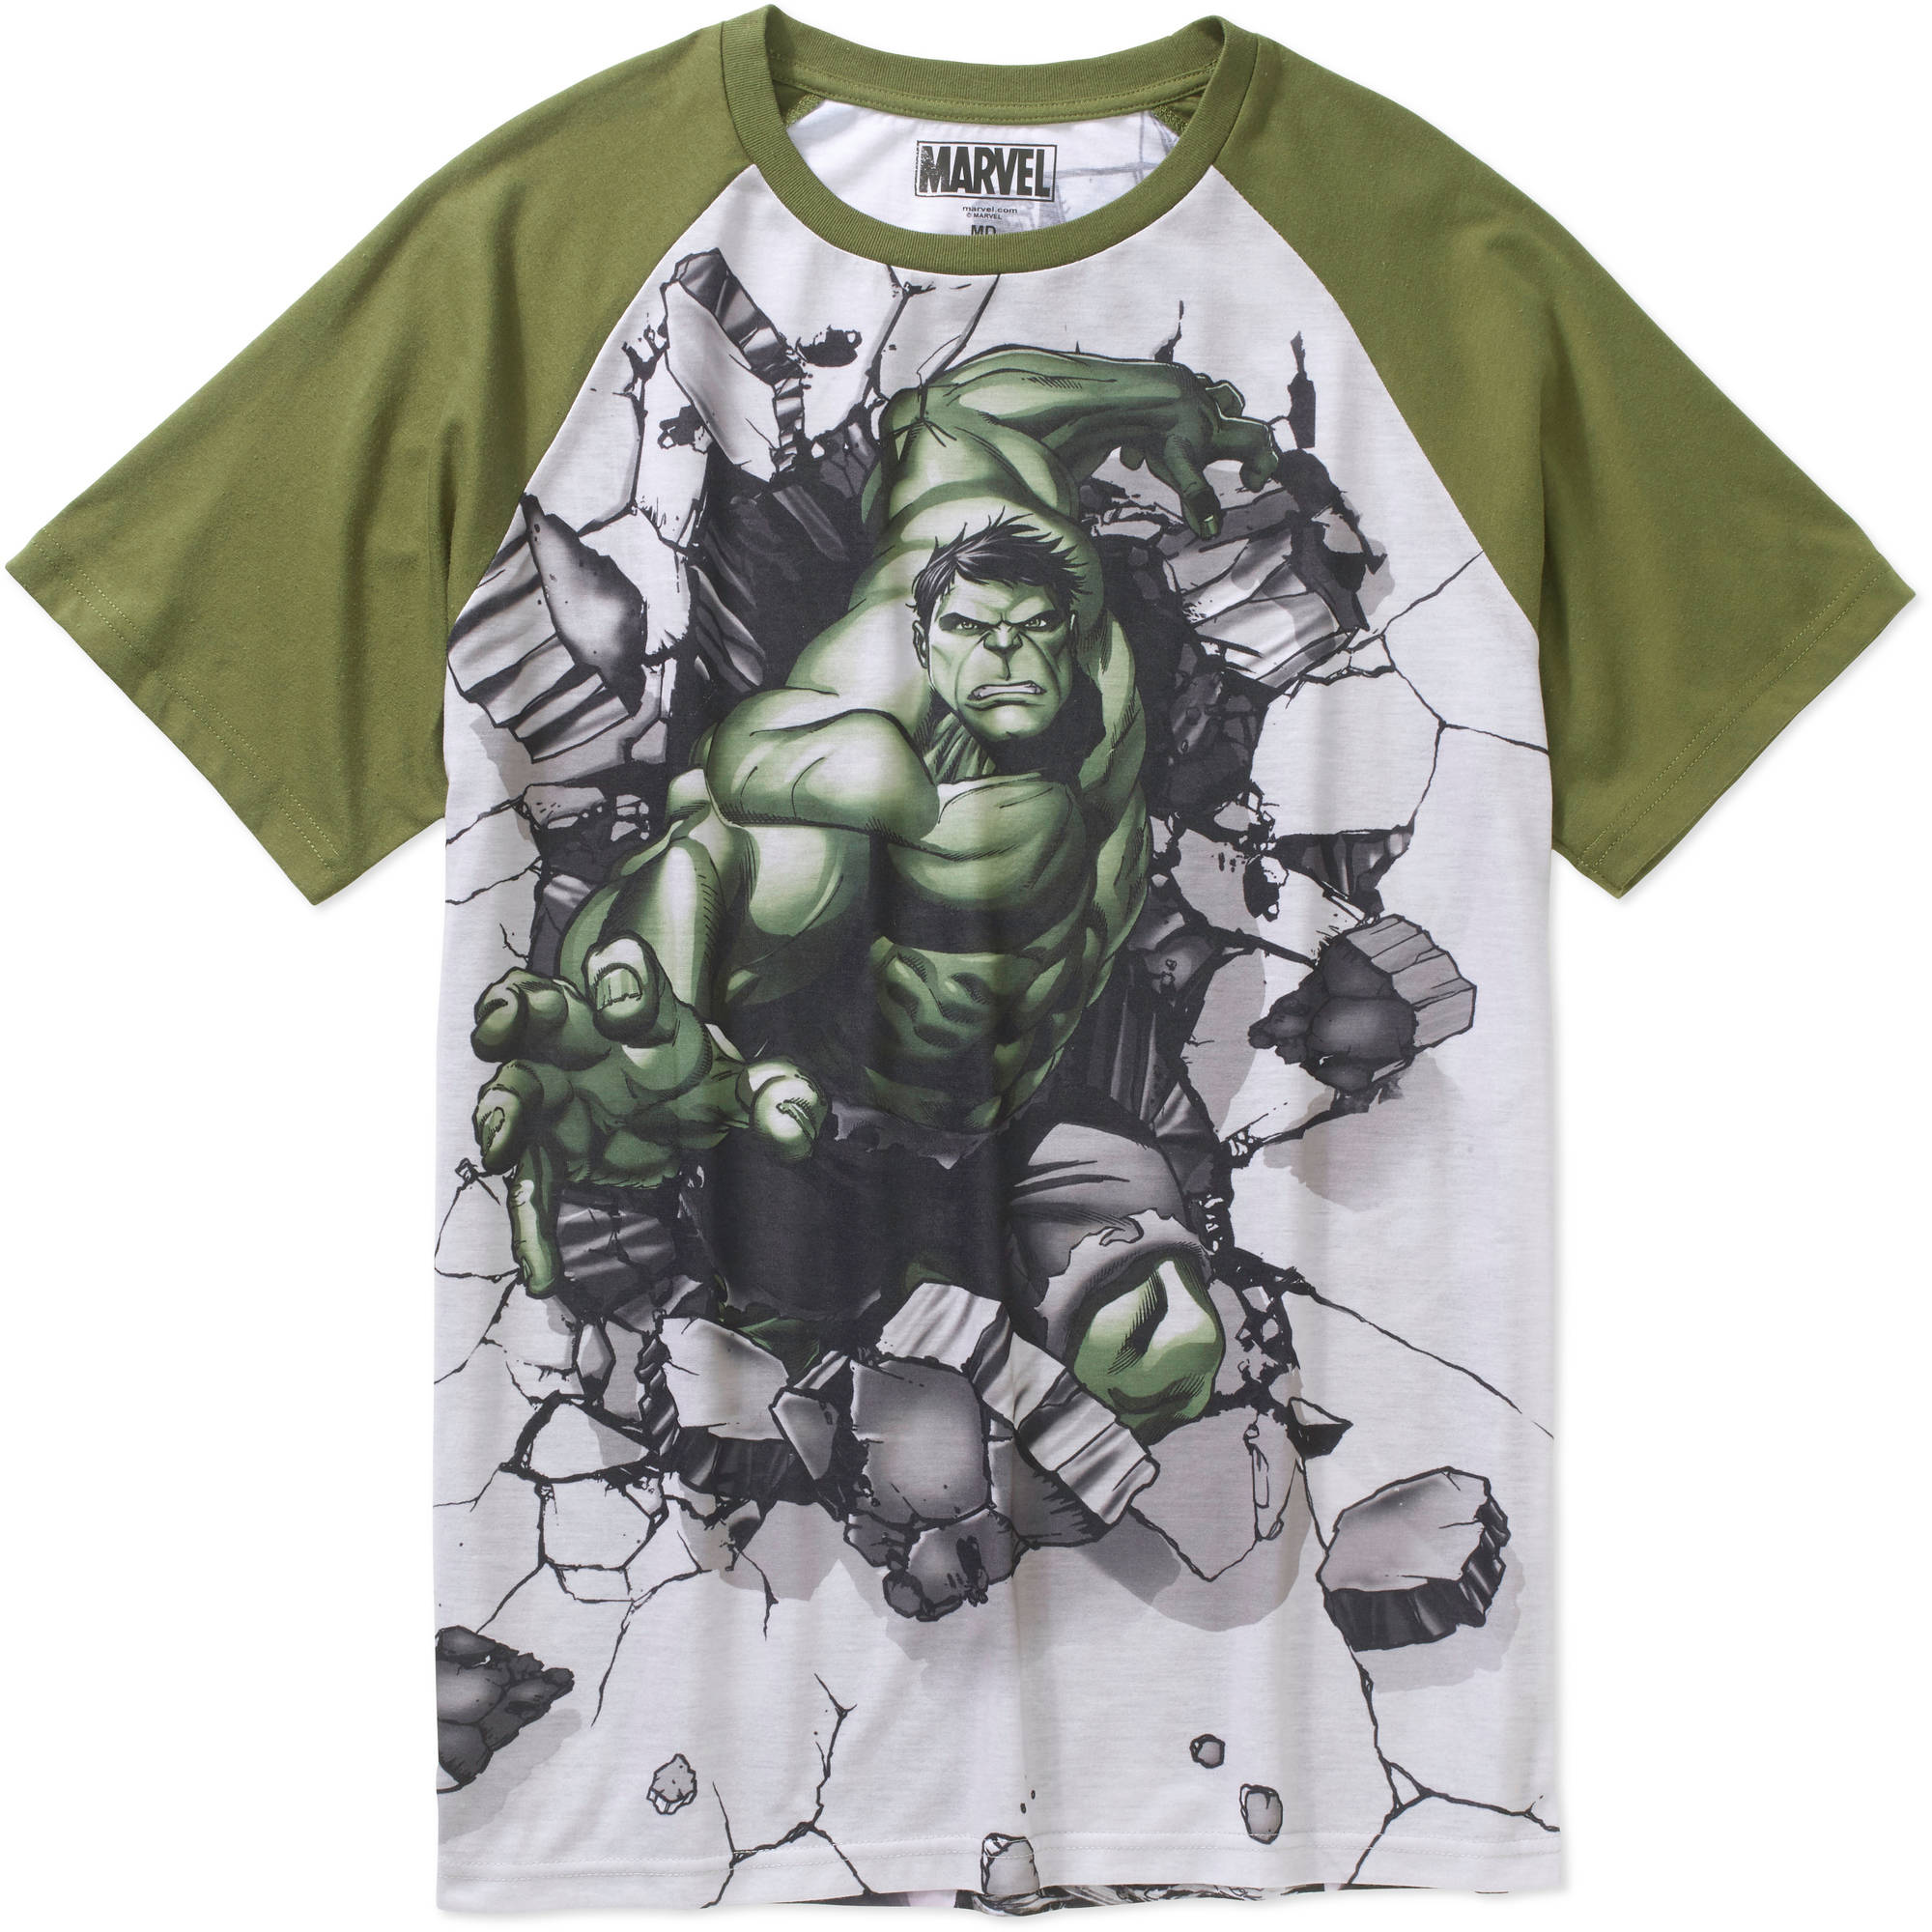 Hulk For Hire Big Men's Graphic Tee,2XL